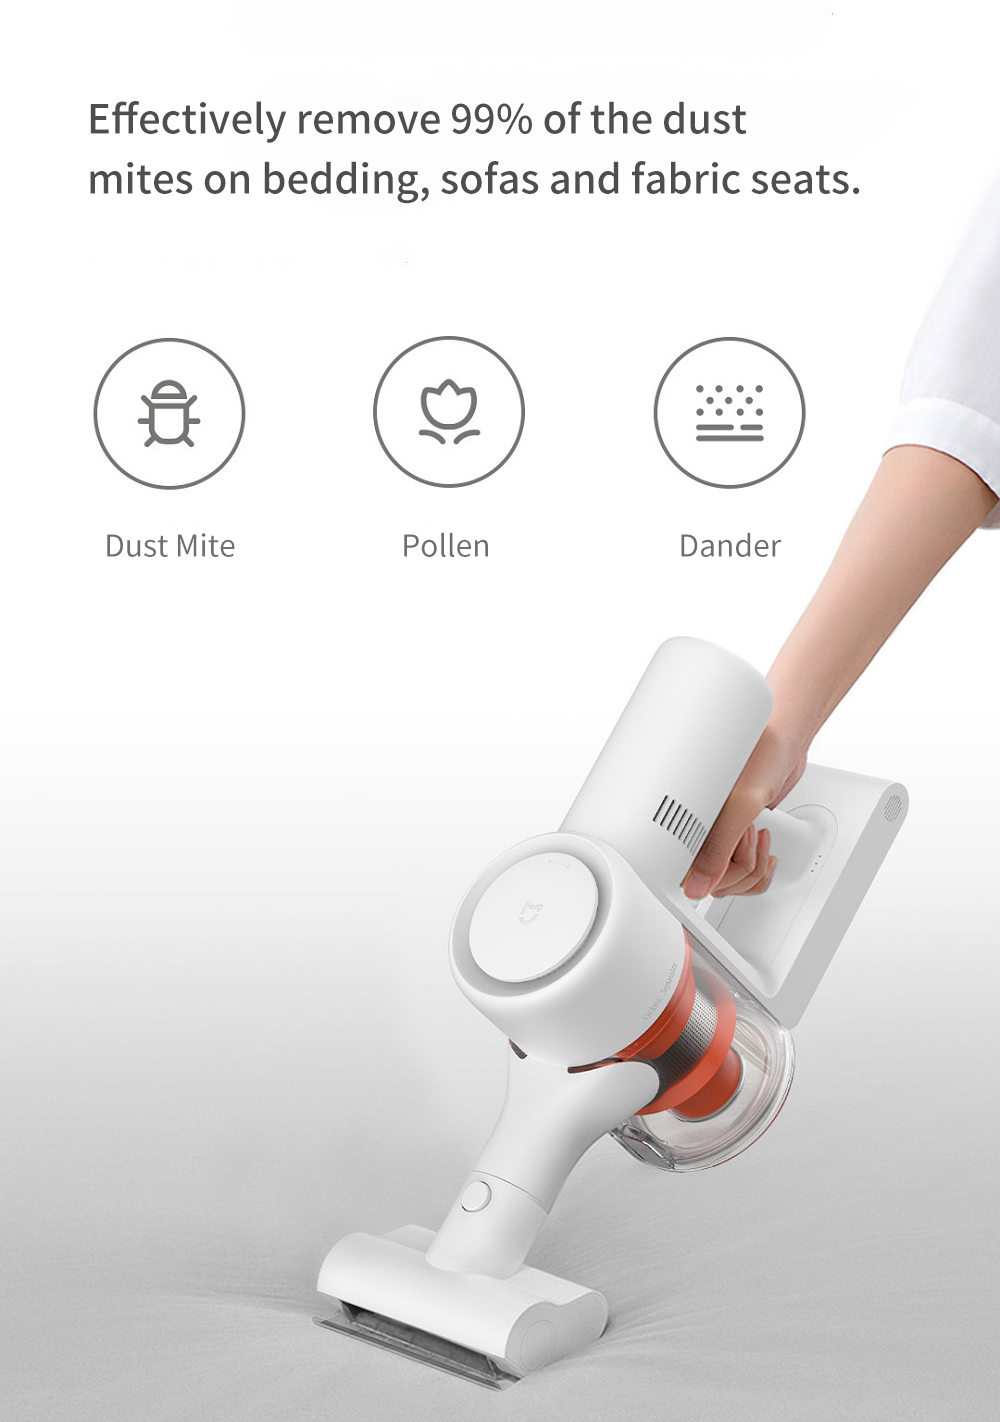 2019 Xiaomi Mijia 1C Handheld Cordless Vacuum Cleaner 20000PA Strong Suction, 10WRPM Brushless Motor, 120AW Suction Power, Deep Mite Removal, 60min Long Battery life